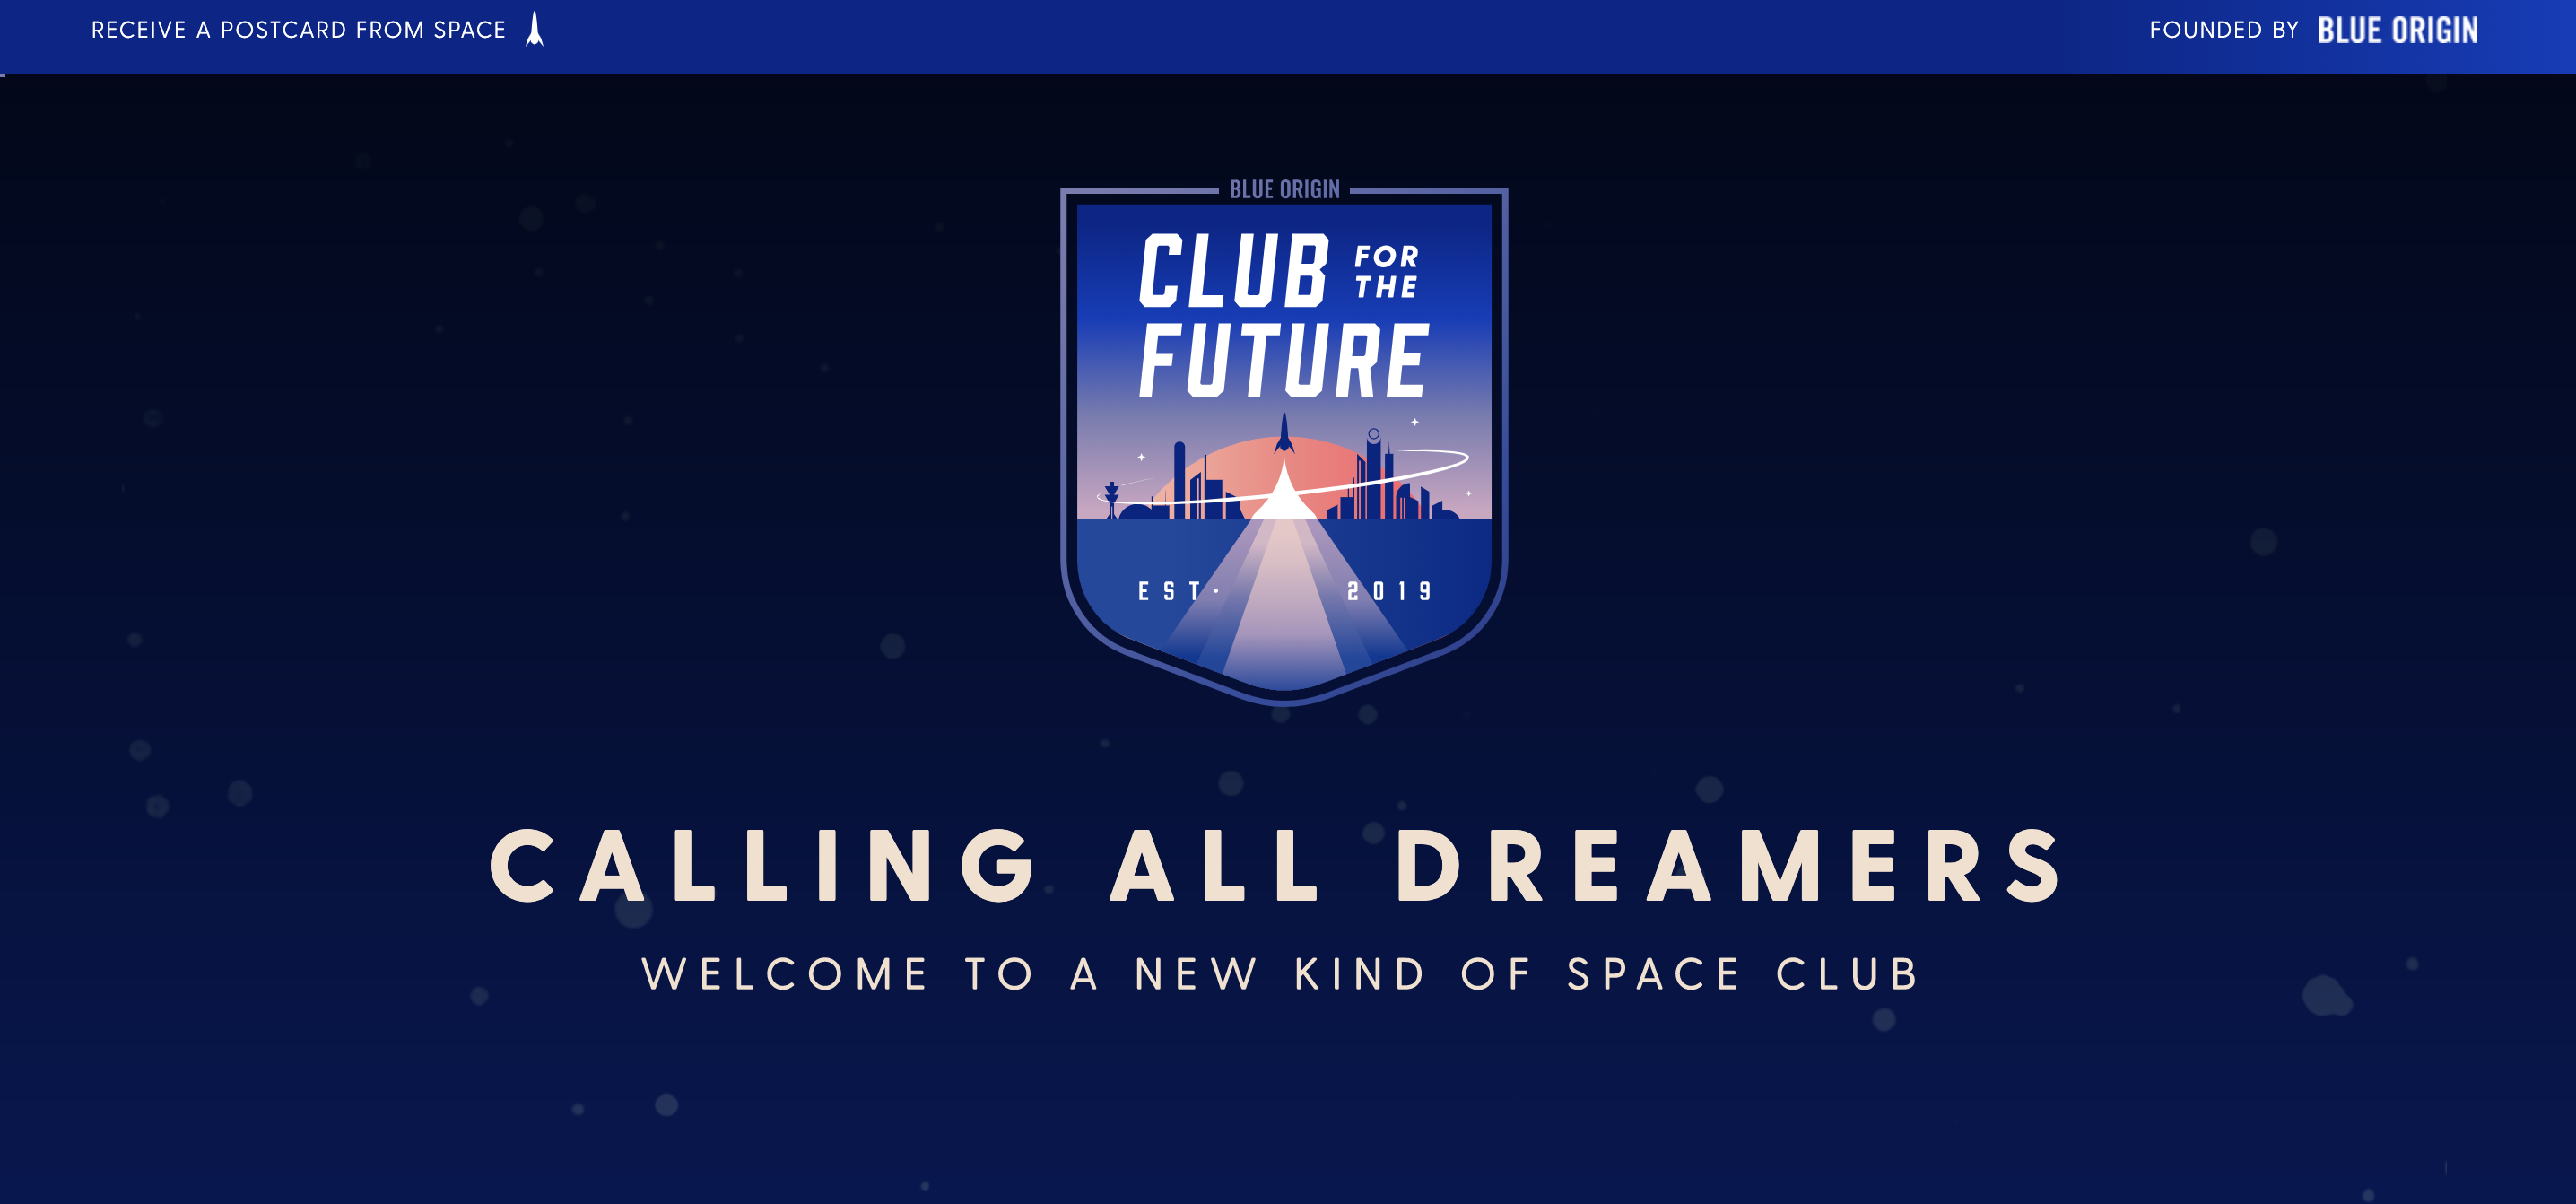 """Blue Origin launches """"Club for the Future"""" to inspire a new generation of space exploration"""